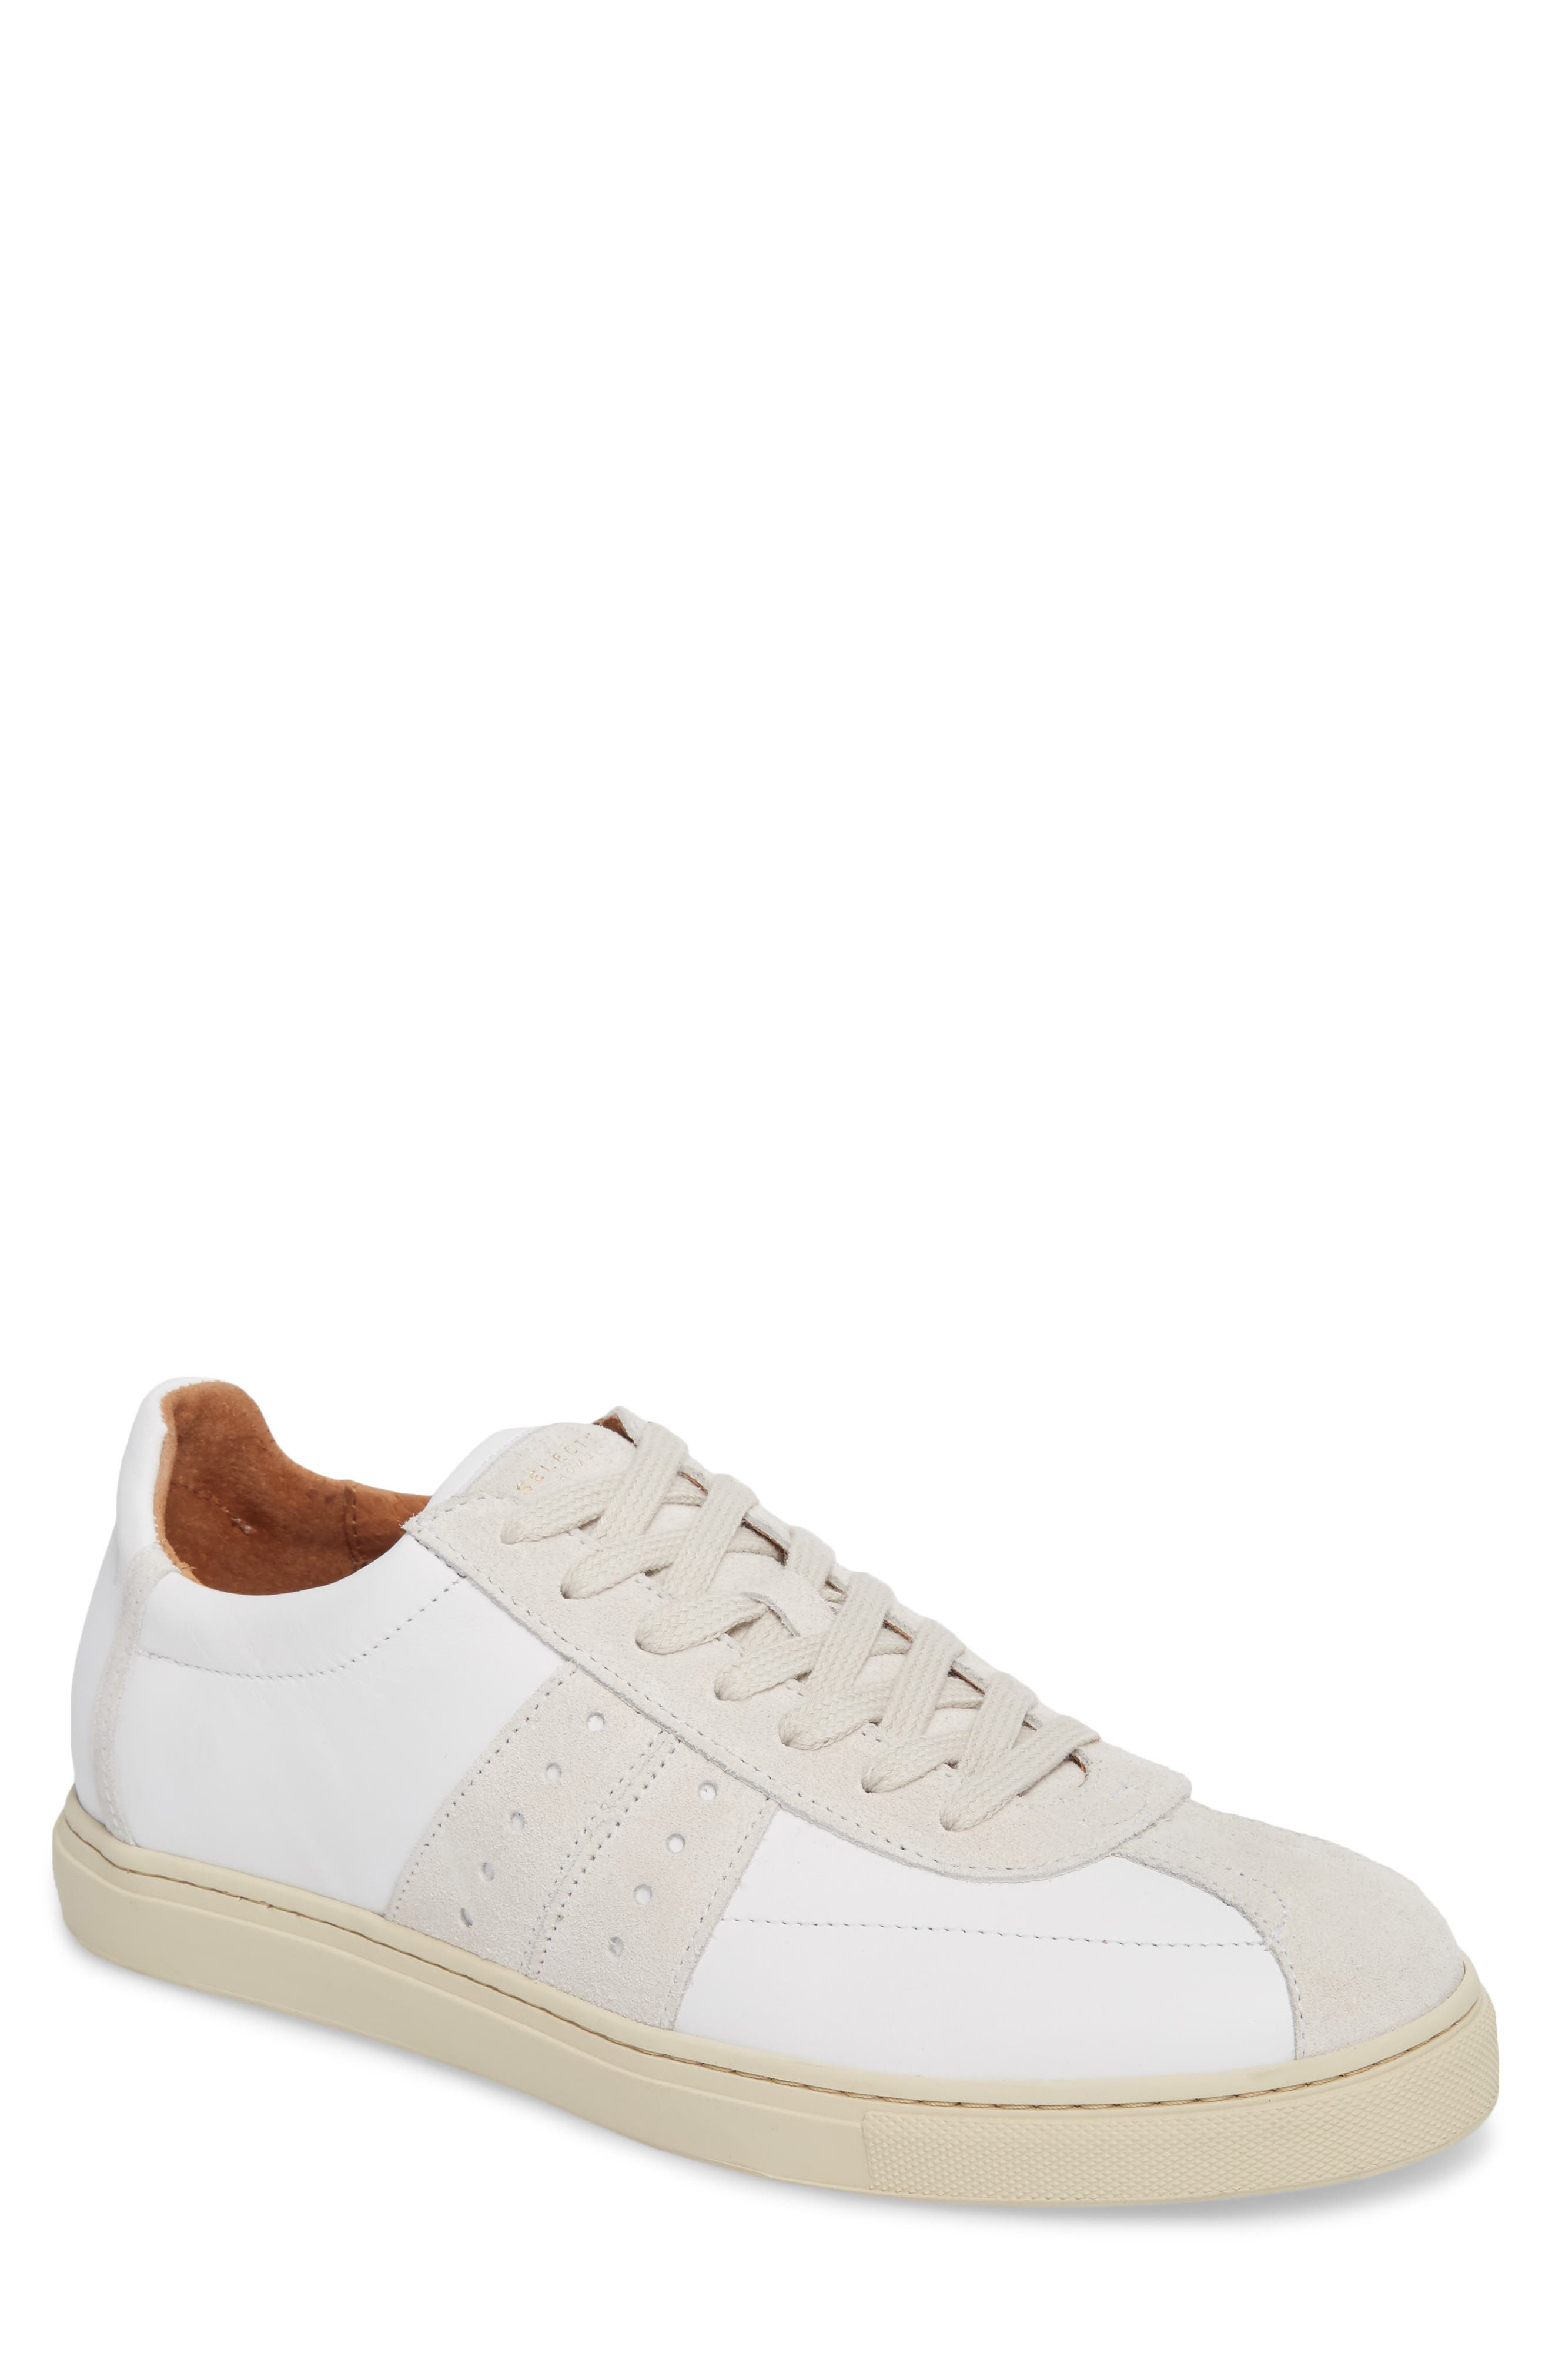 Duran New Mix Sneaker,                             Main thumbnail 1, color,                             White Leather/ Suede